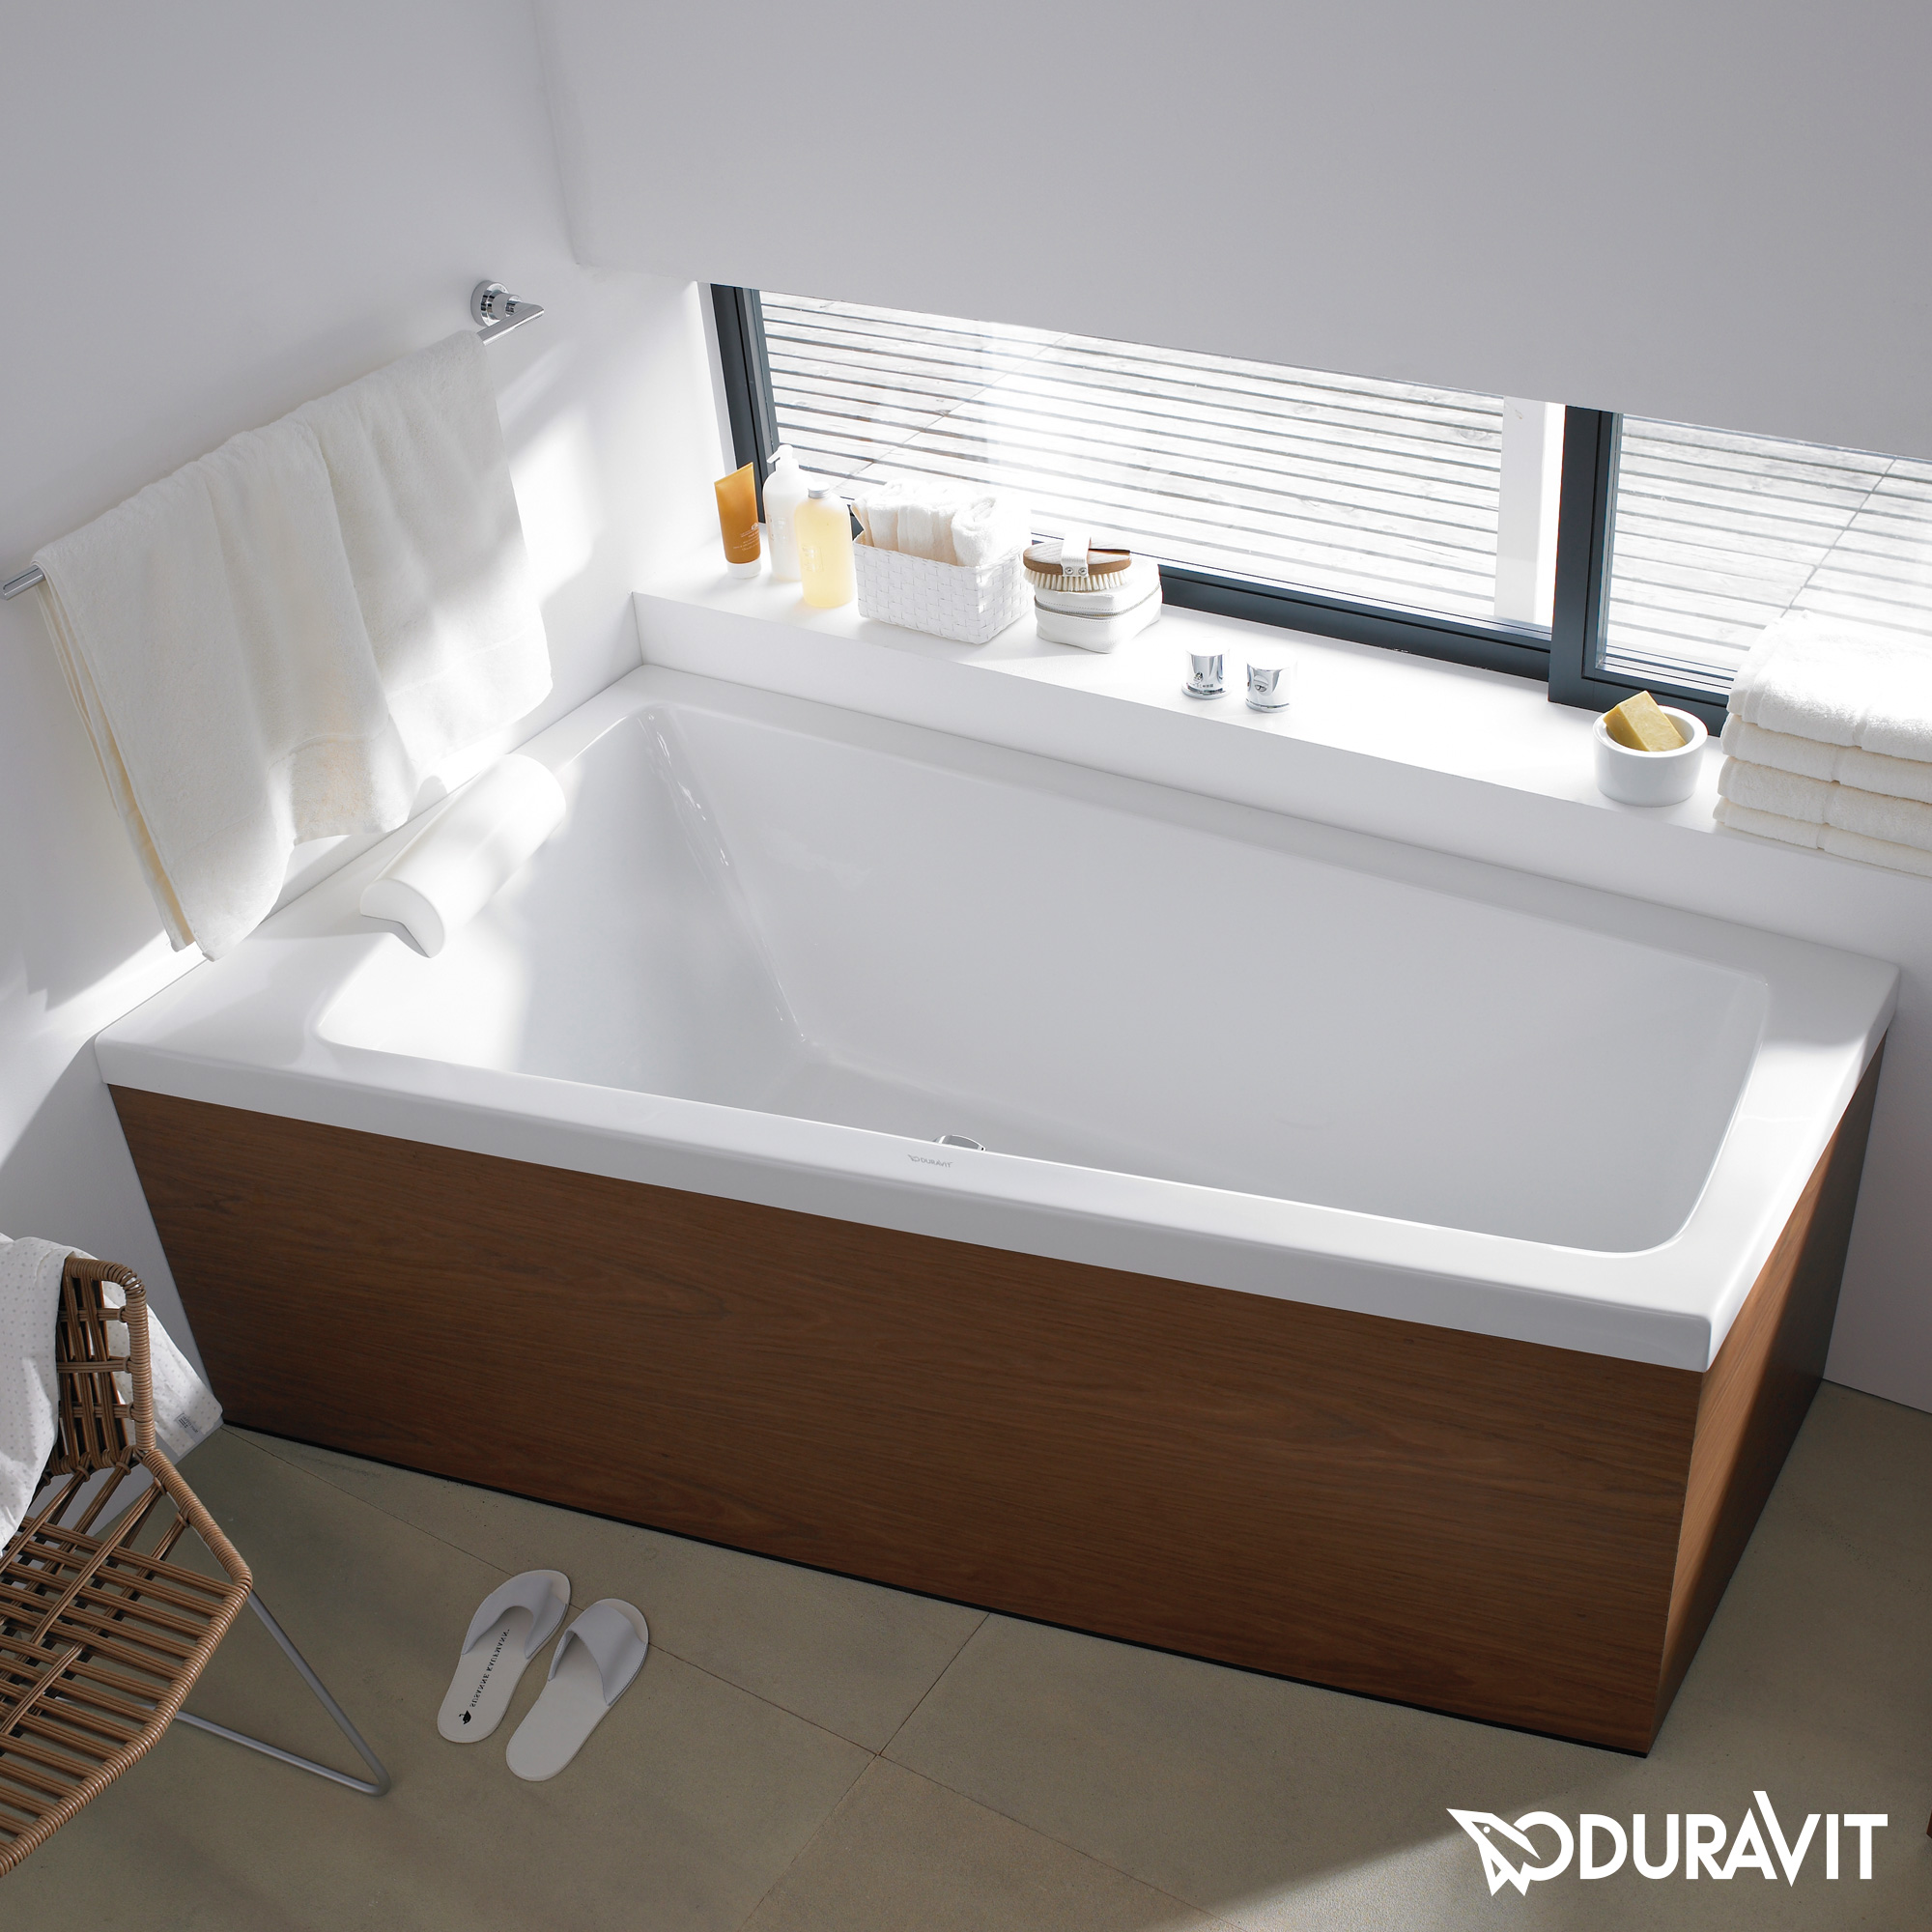 duravit paiova badewanne ecke links einbauversion 700216000000000 reuter onlineshop. Black Bedroom Furniture Sets. Home Design Ideas